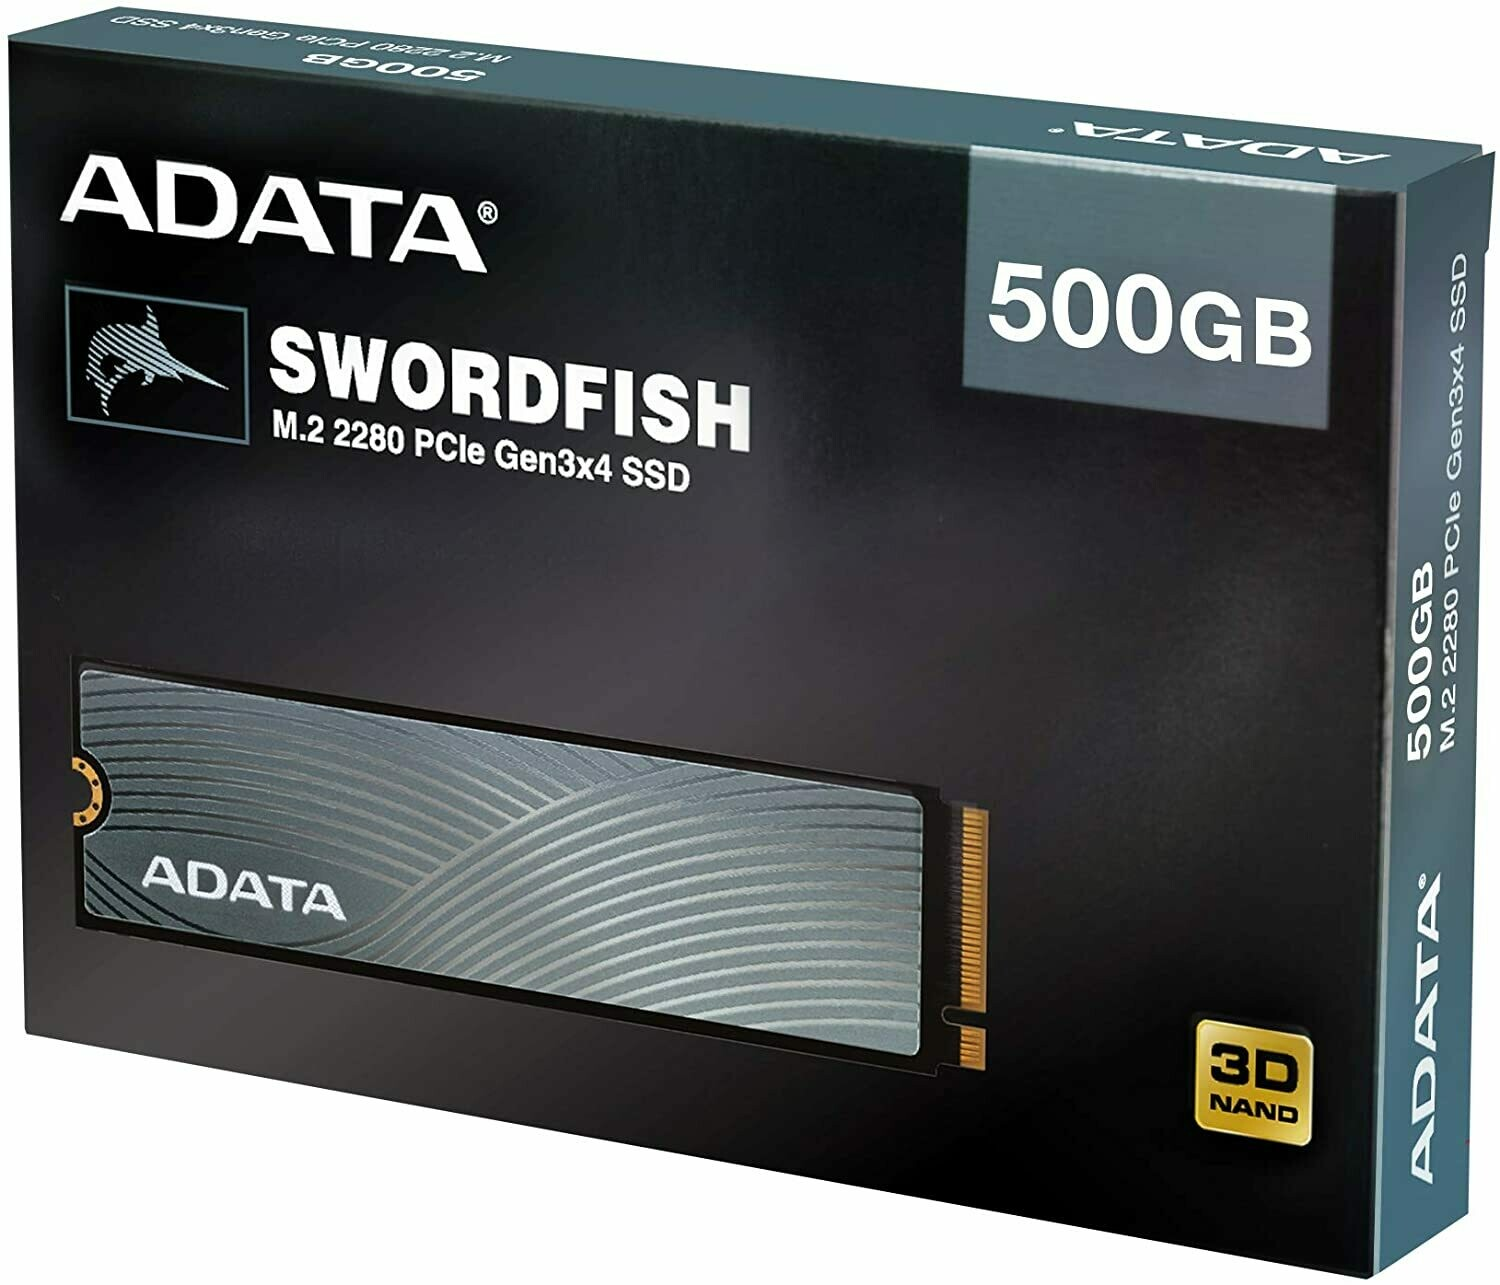 ADATA Swordfish 500GB 3D NAND PCIe Gen3x4 NVMe M.2 2280 Read/Write up to 1800/1200MB/s Internal SSD